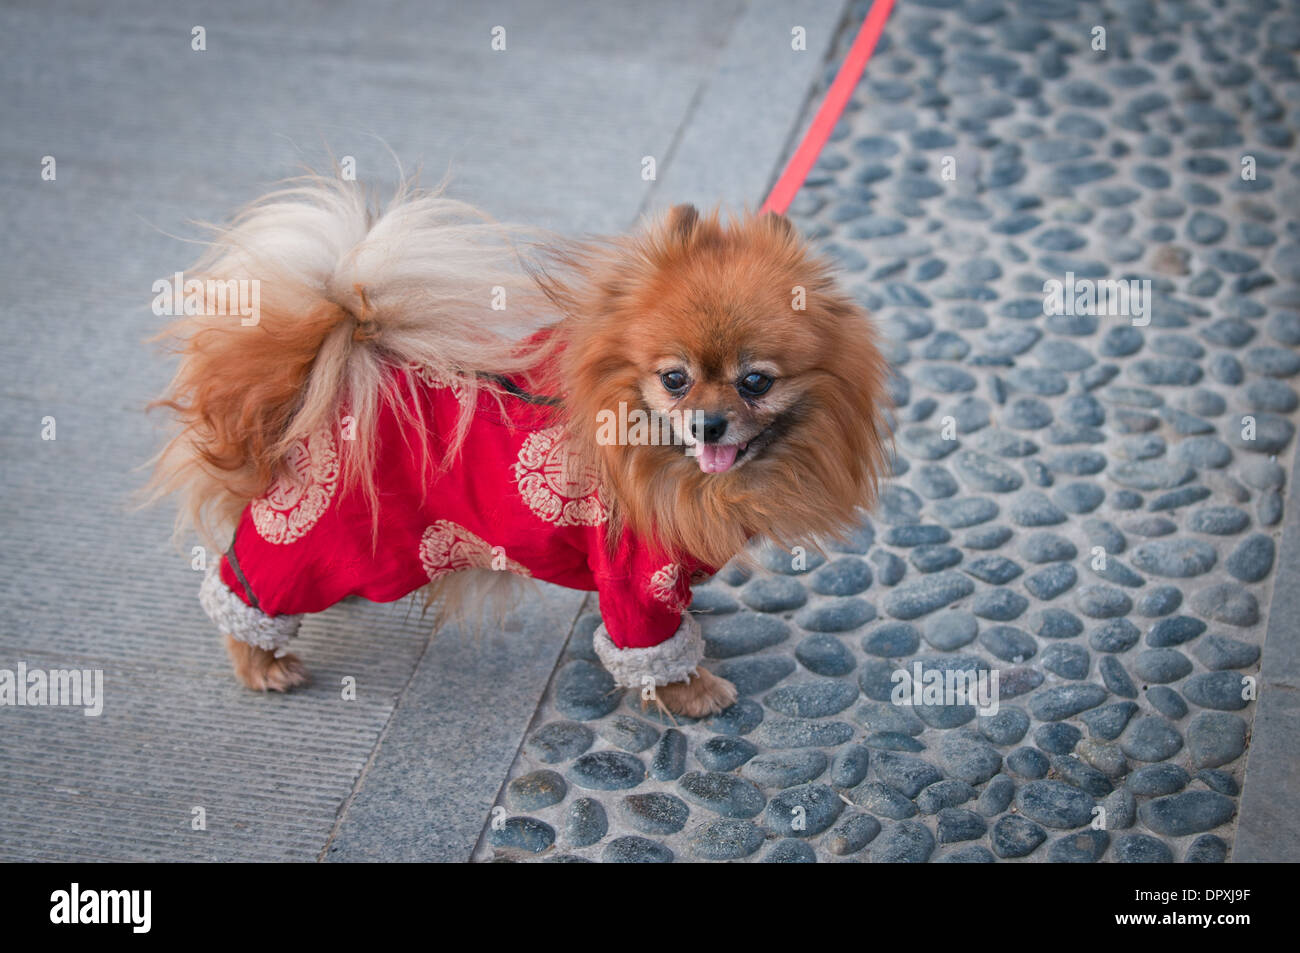 Small Spitz Type Pomeranian Dog Commonly Known As Pom Pom Stock